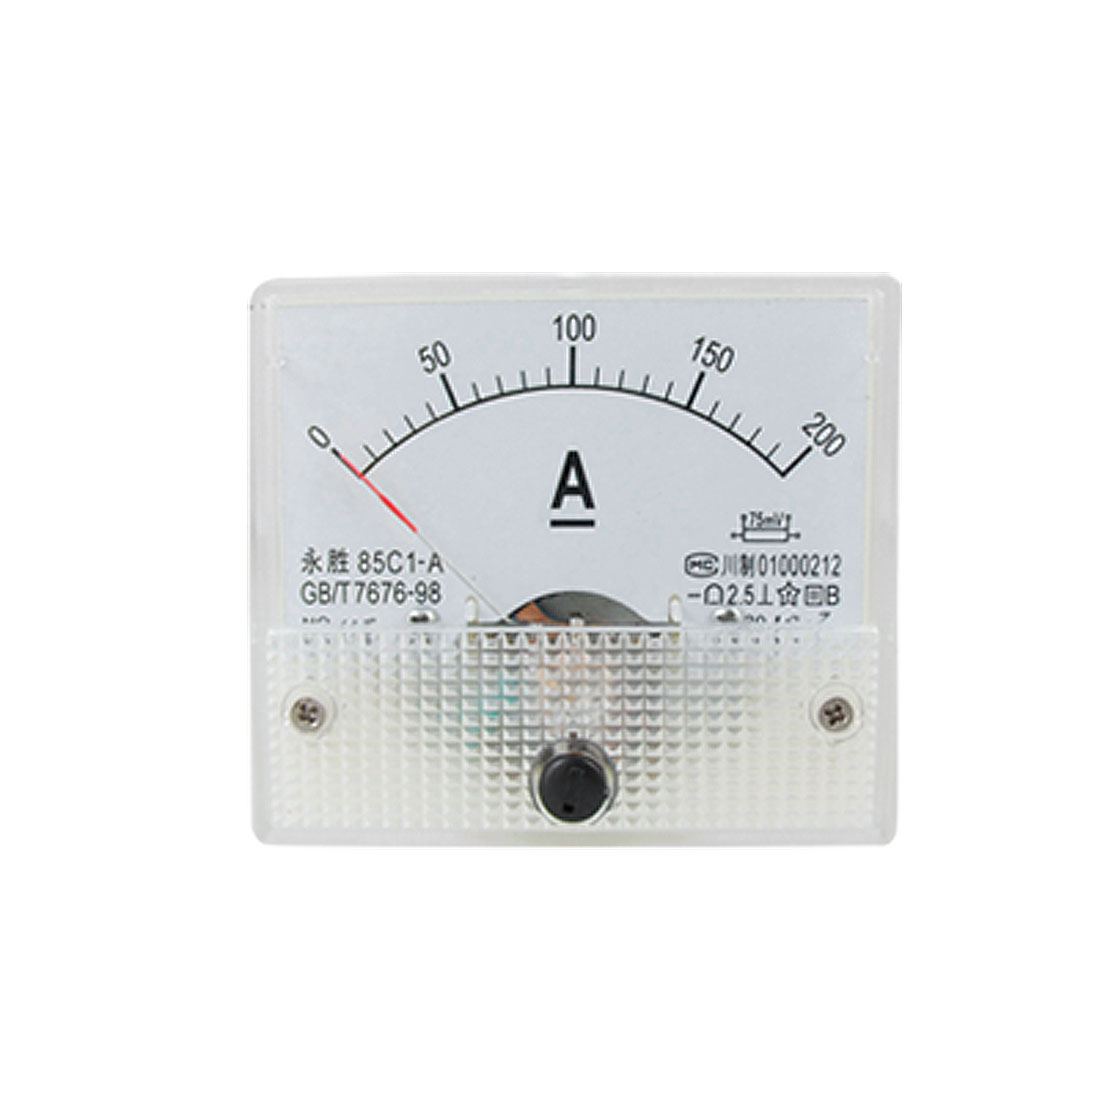 0-200A Ampere Needle Panel Meter Amperemeter 85C1-A